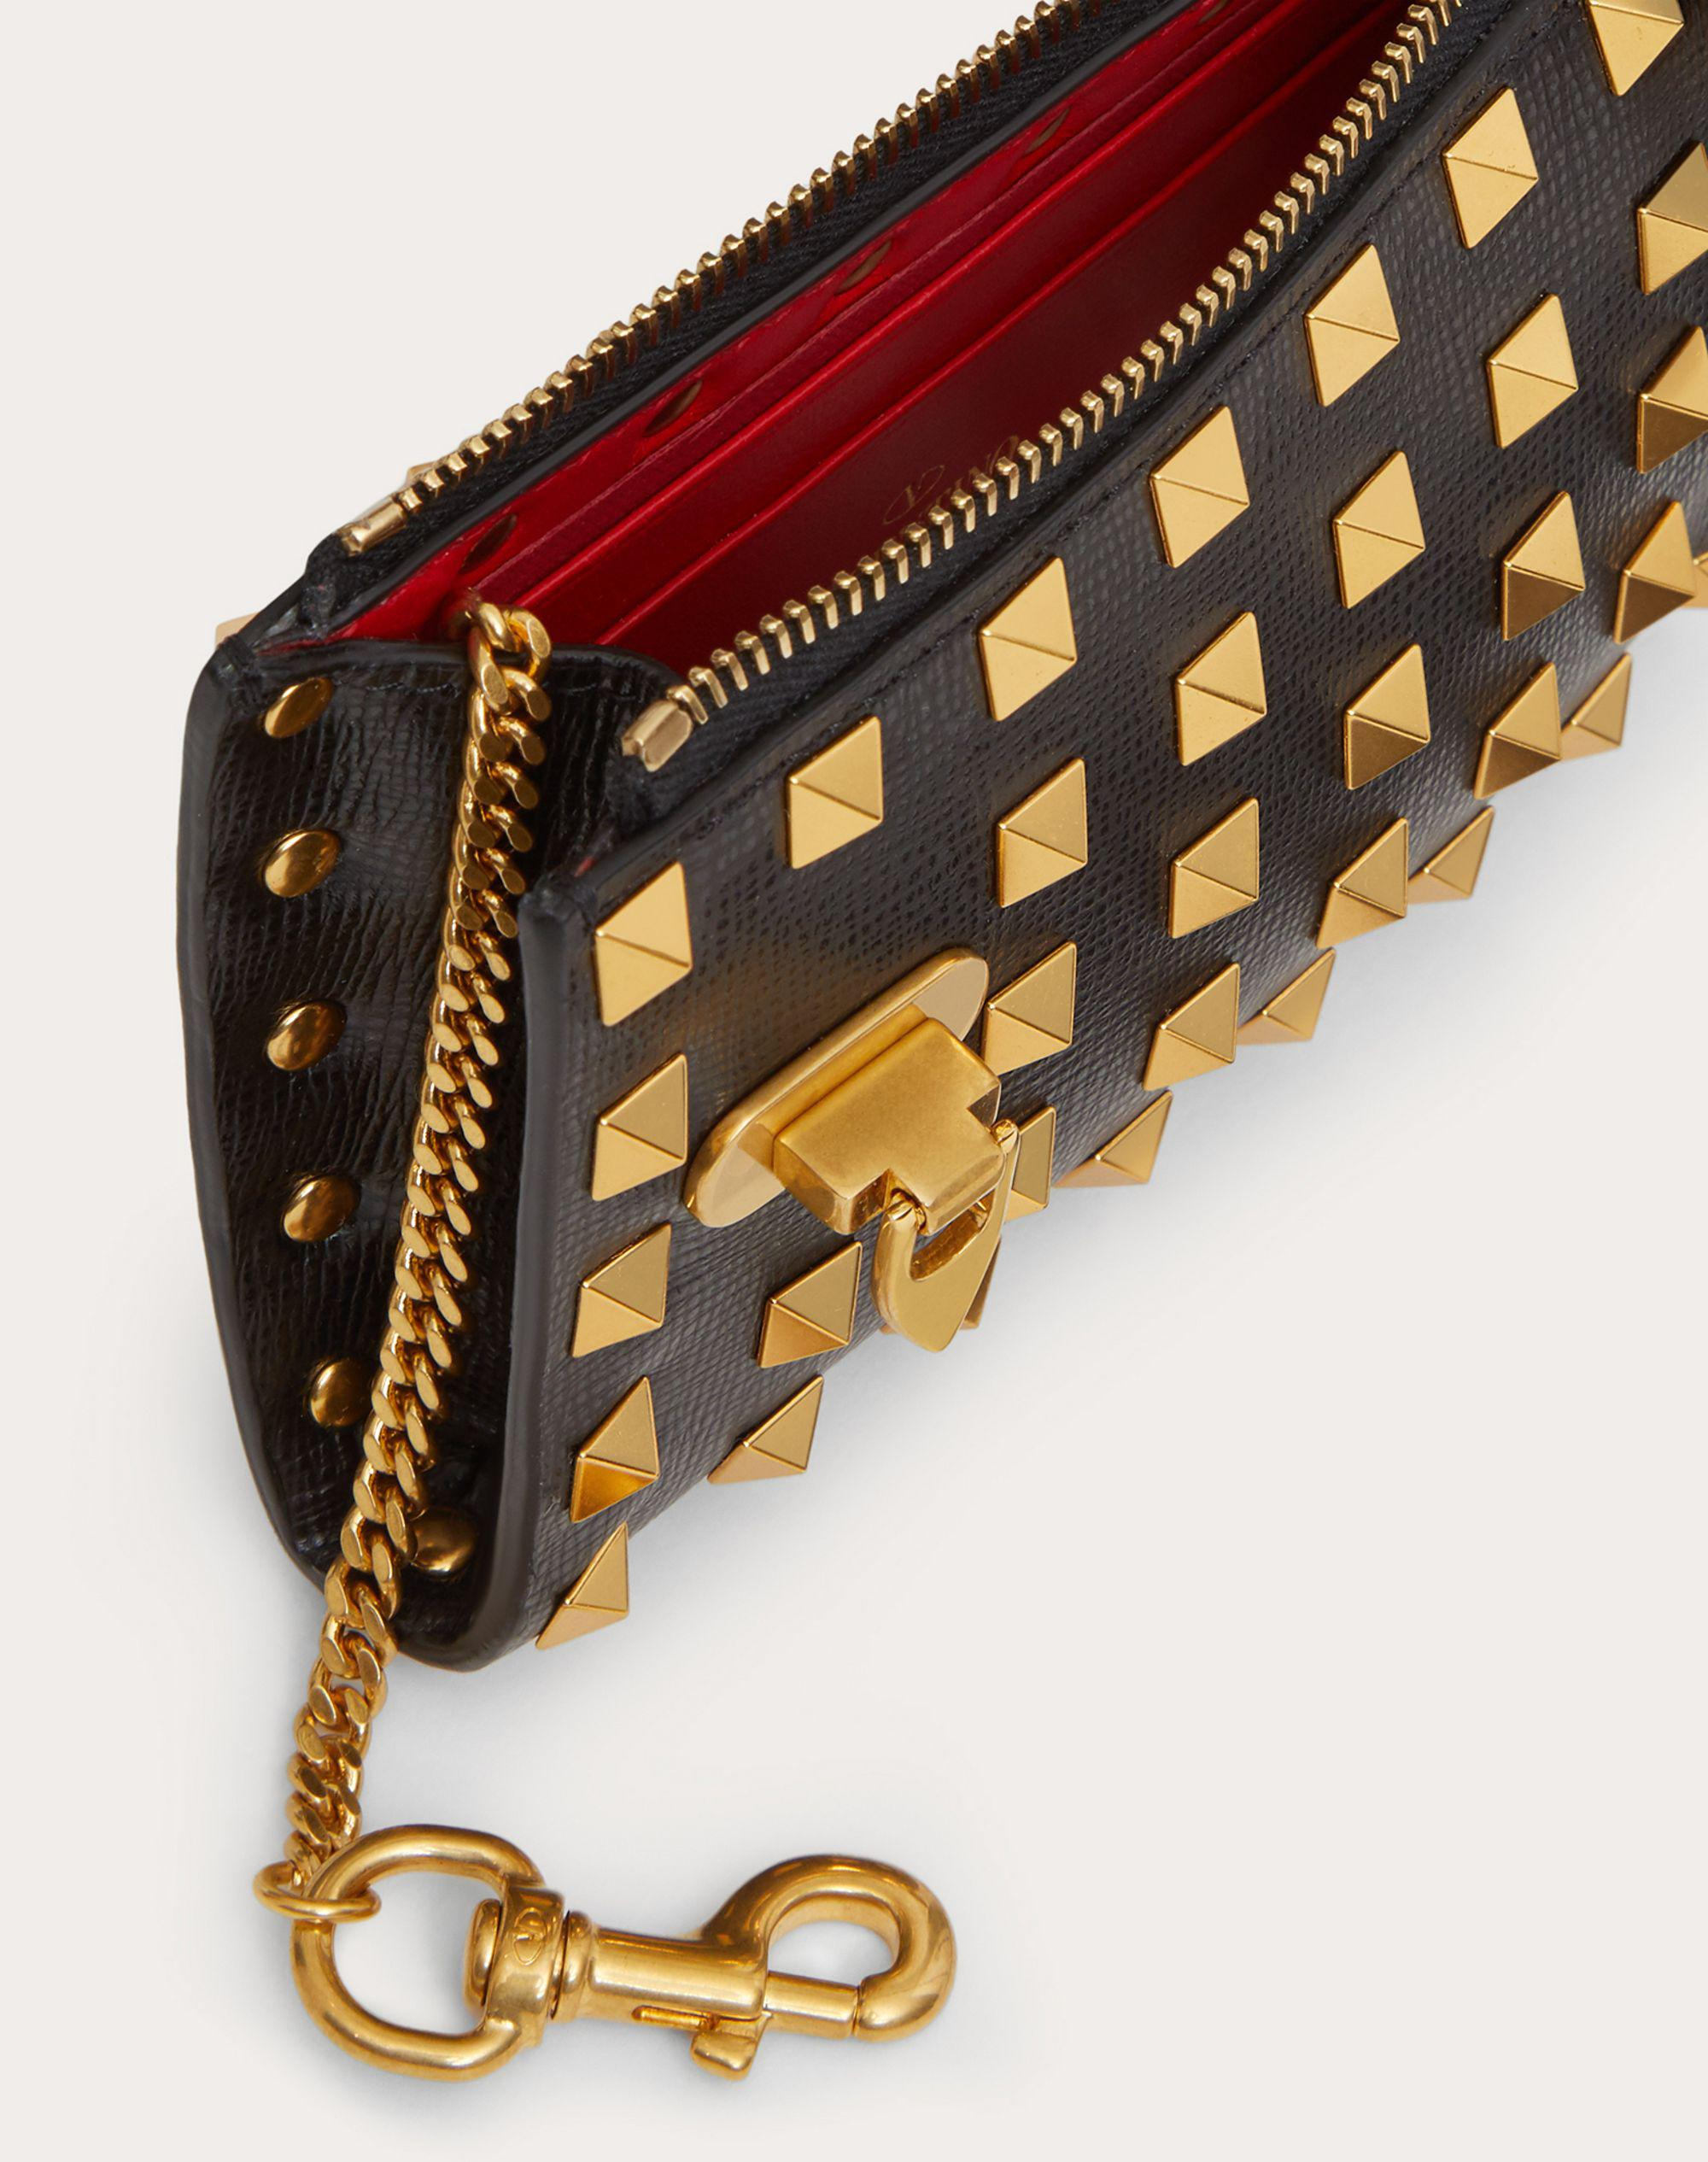 VALENTINO GARAVANI ROCKSTUD COIN PURSE AND CARDHOLDER IN GRAINY CALFSKIN LEATHER WITH ALL-OVER STUDS 4